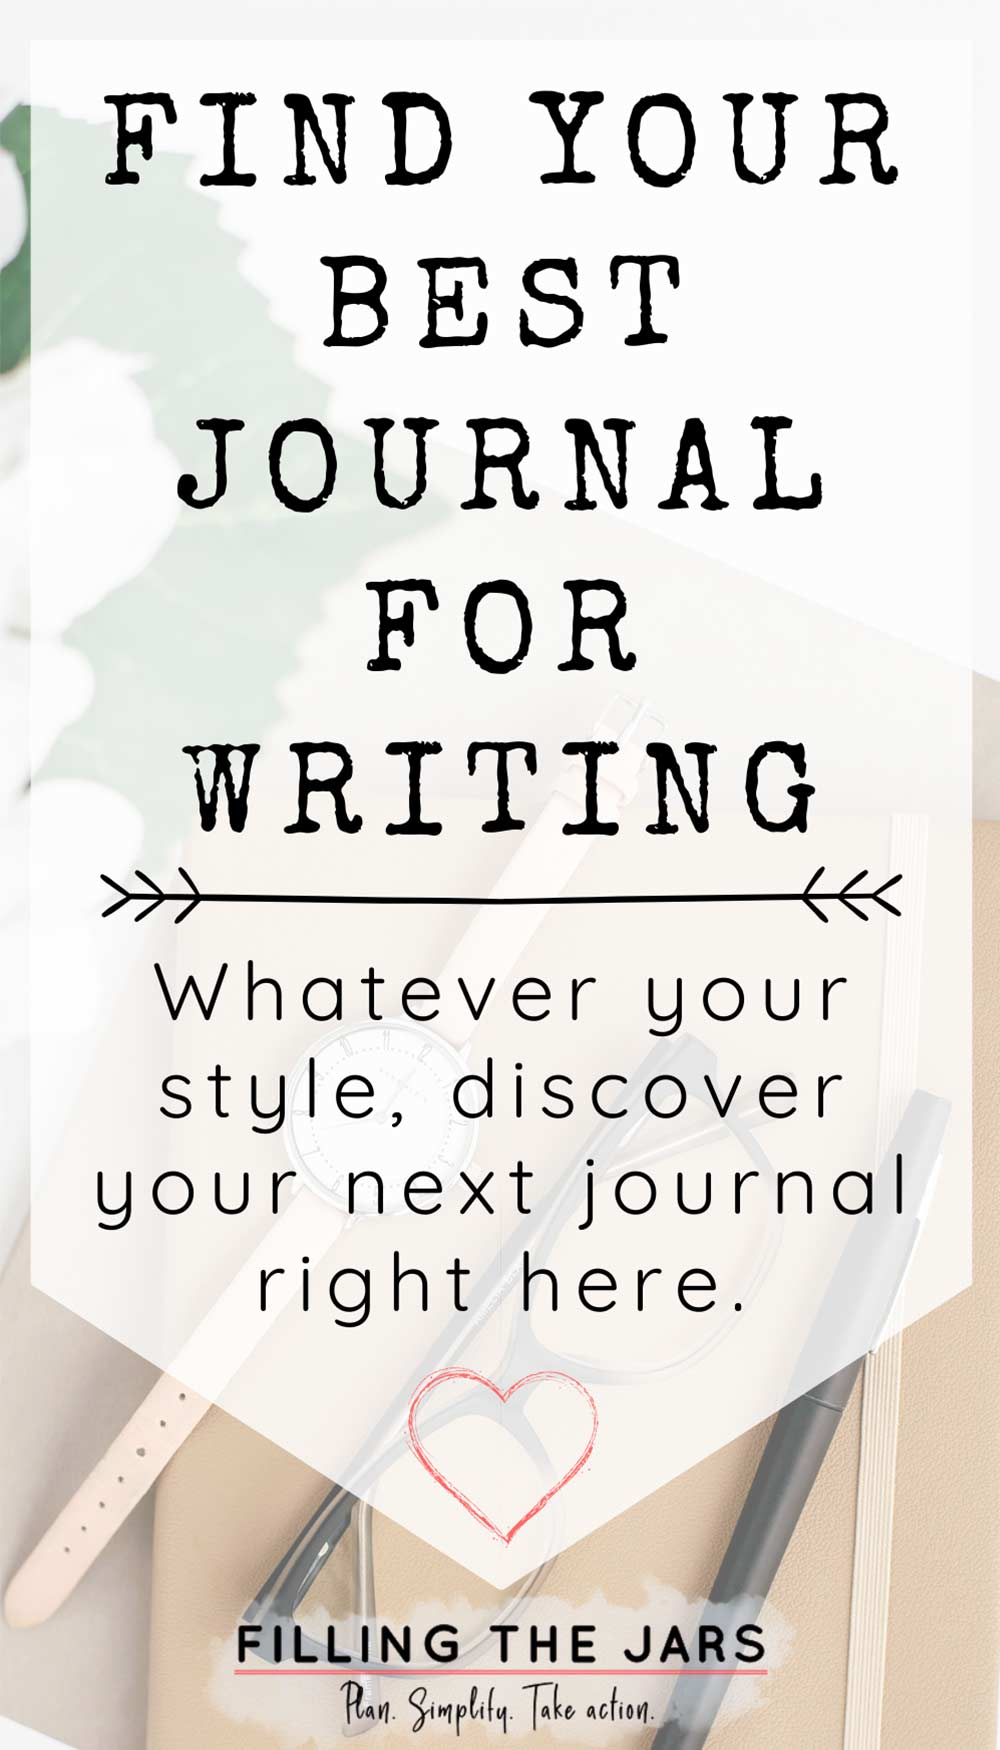 Text find your best journals for writing on white background over image of journal and personal items.